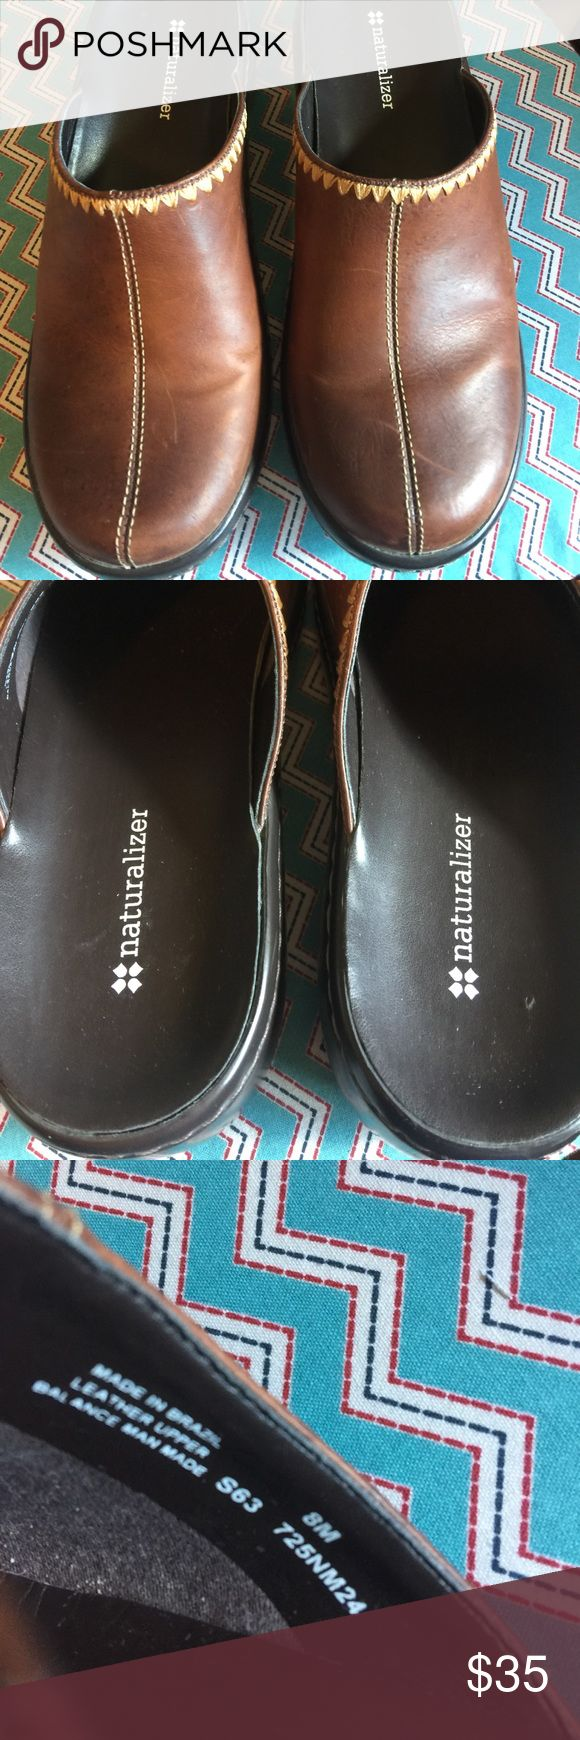 Never worn Naturalizer leather upper mules Beautiful leather uppers by Naturalizer. Size 8 M Naturalizer Shoes Mules & Clogs